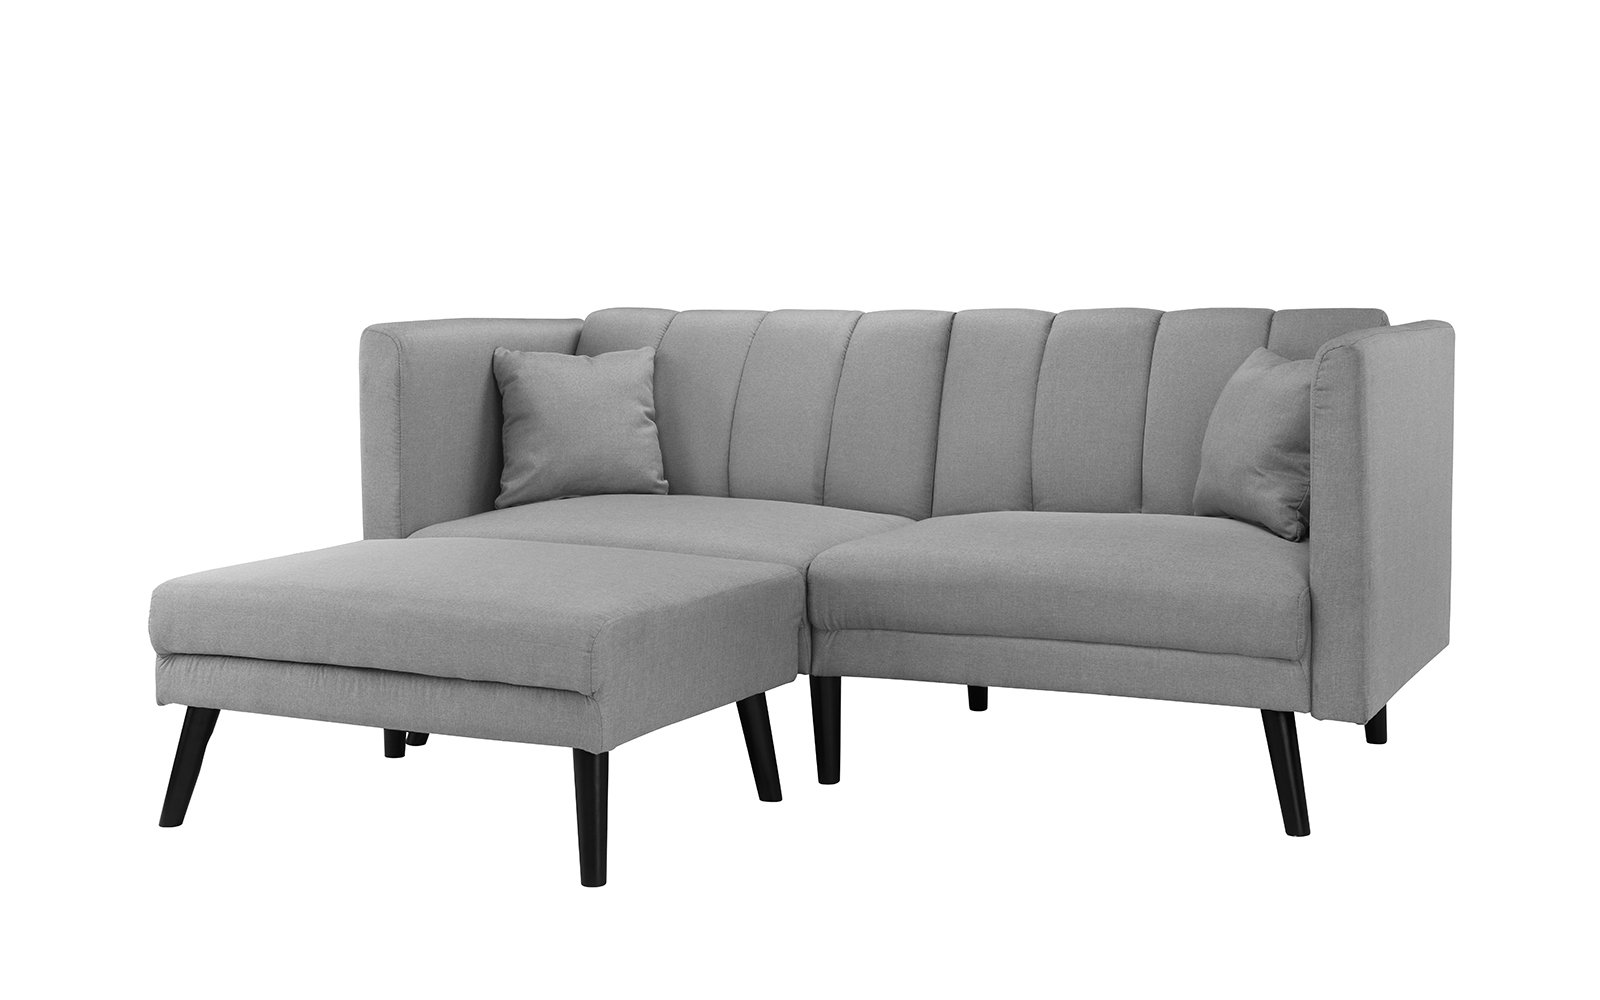 Casual Guest Room Couch Light Grey Futon Sofa Bed, Living Room ...